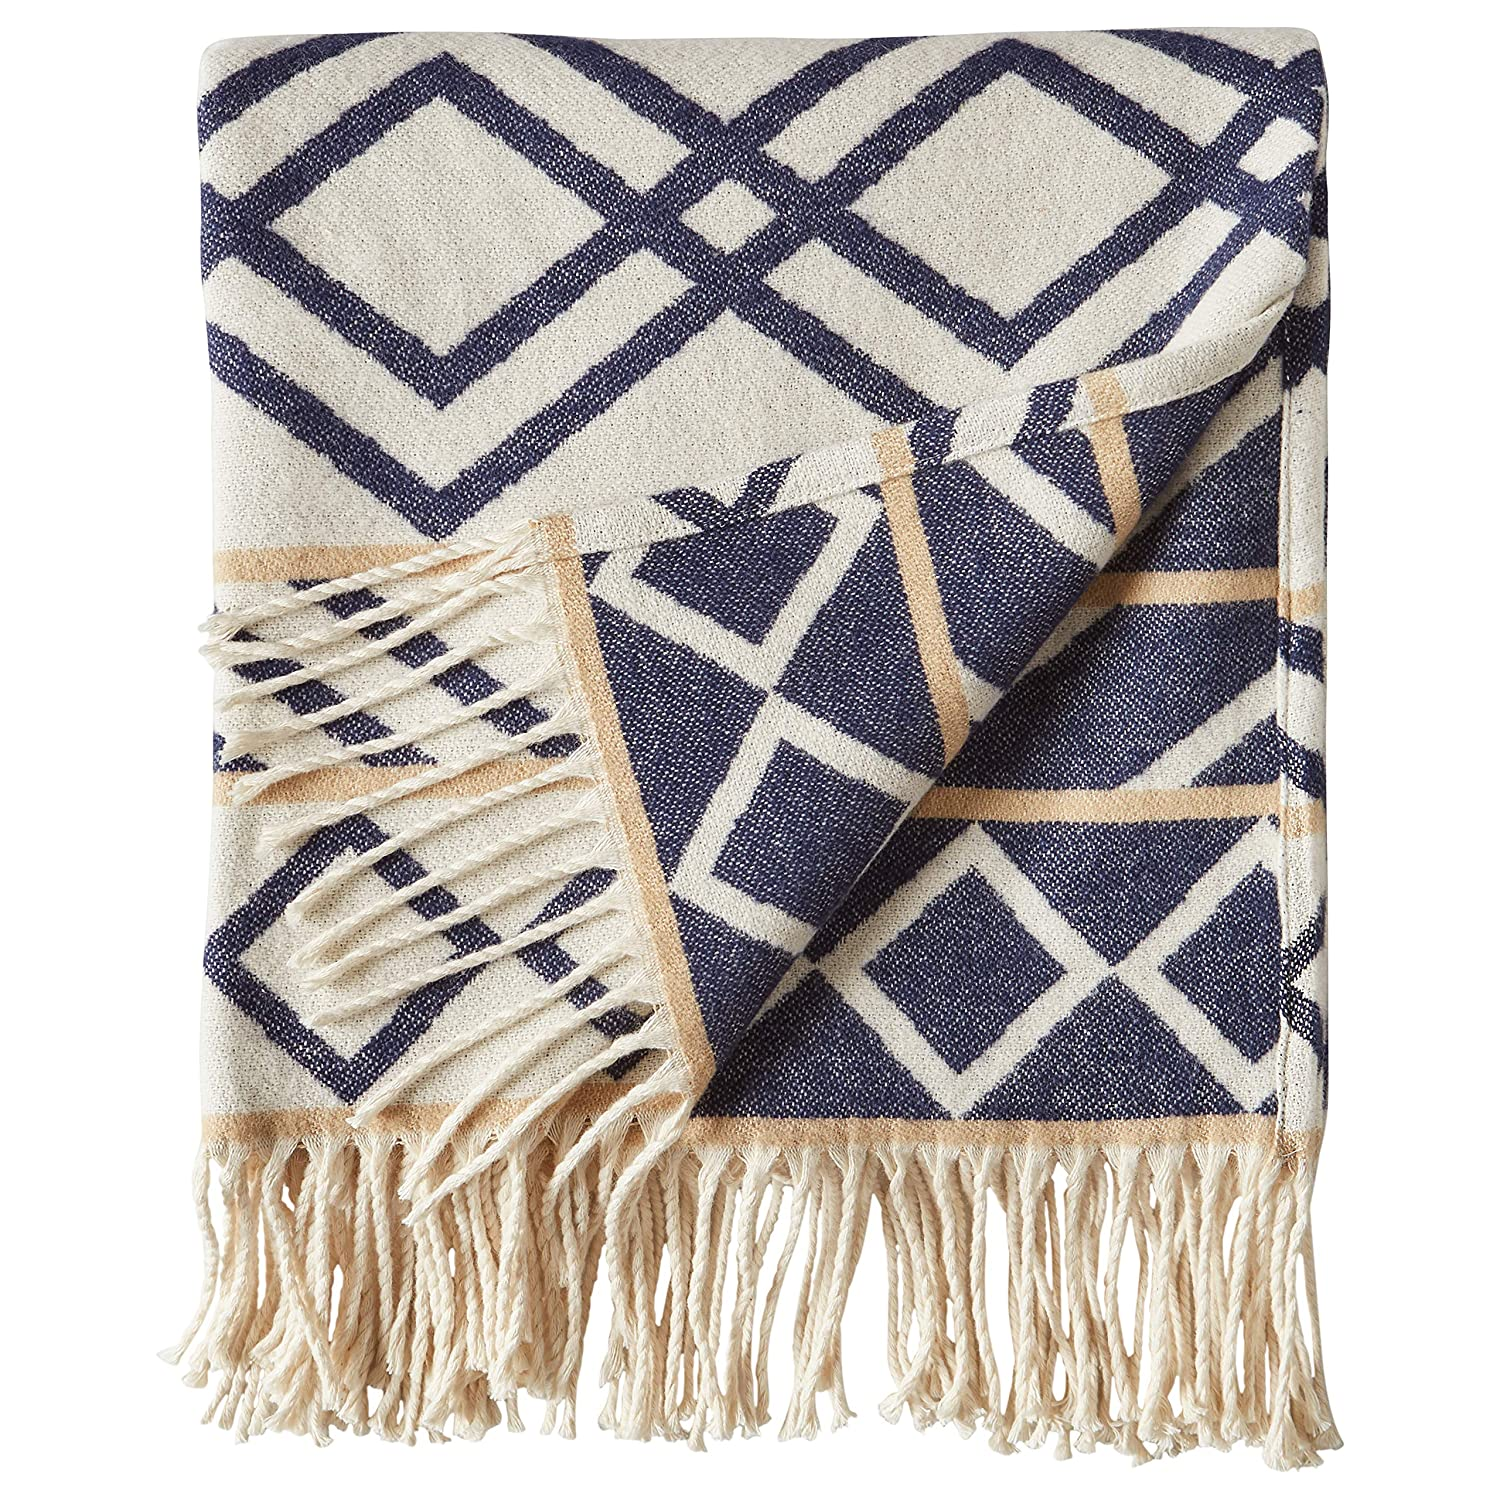 Rivet Global Inspired Throw Blanket, 50